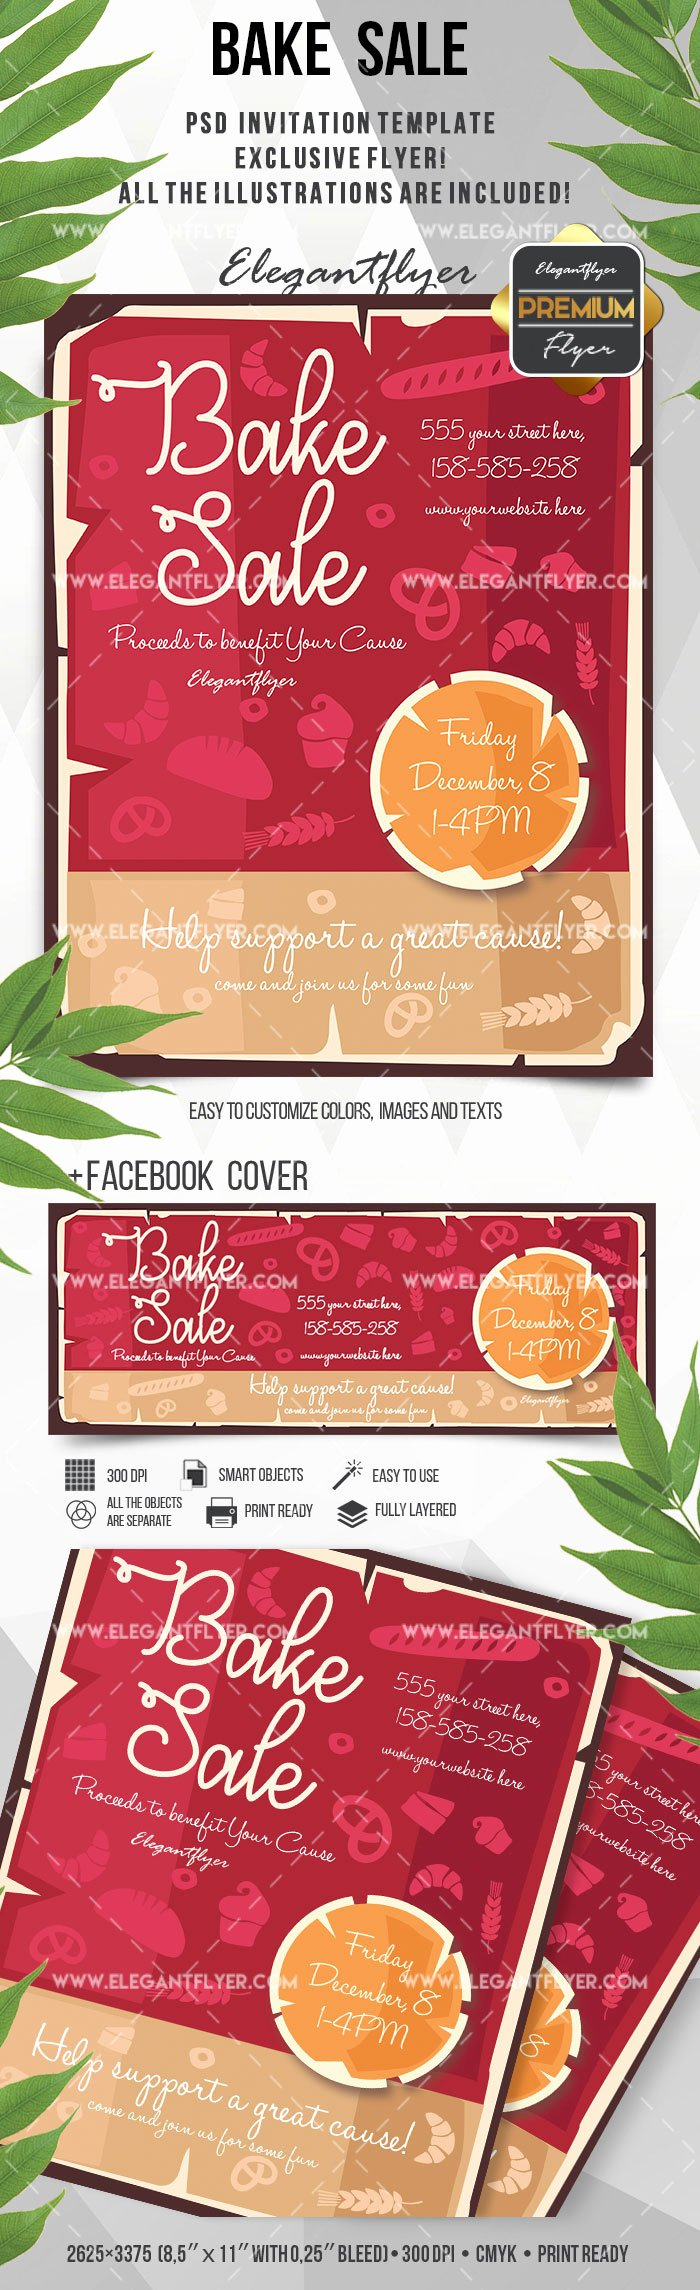 Bake Sale Flyer Template Fresh Bake Sale Poster – by Elegantflyer